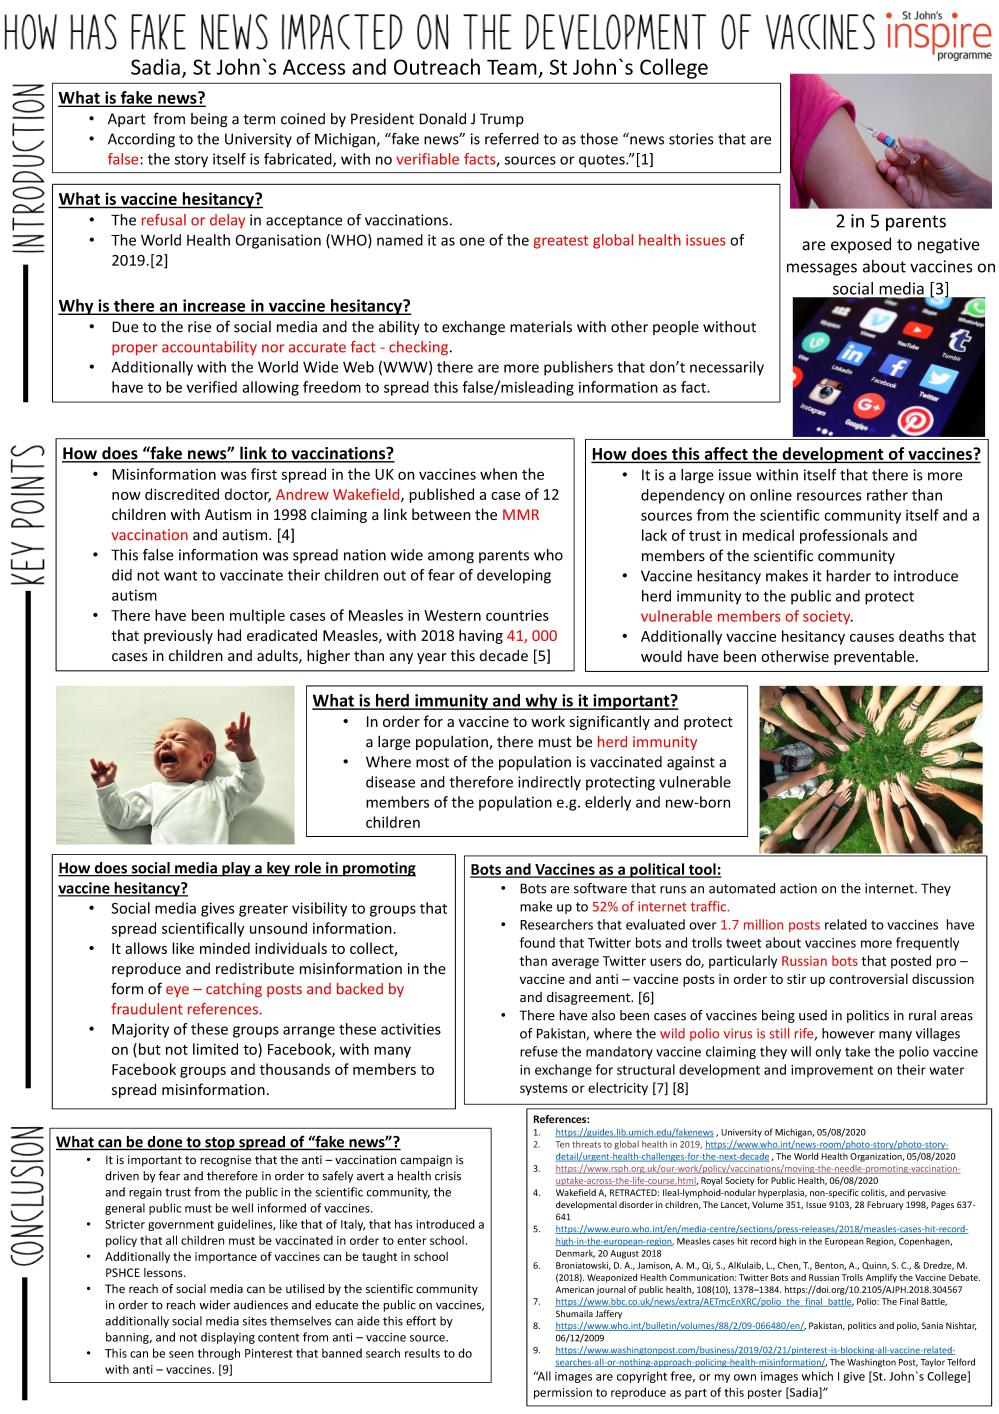 How has fake news impacted on the development of vaccines (Academic Poster Project by Sadia)